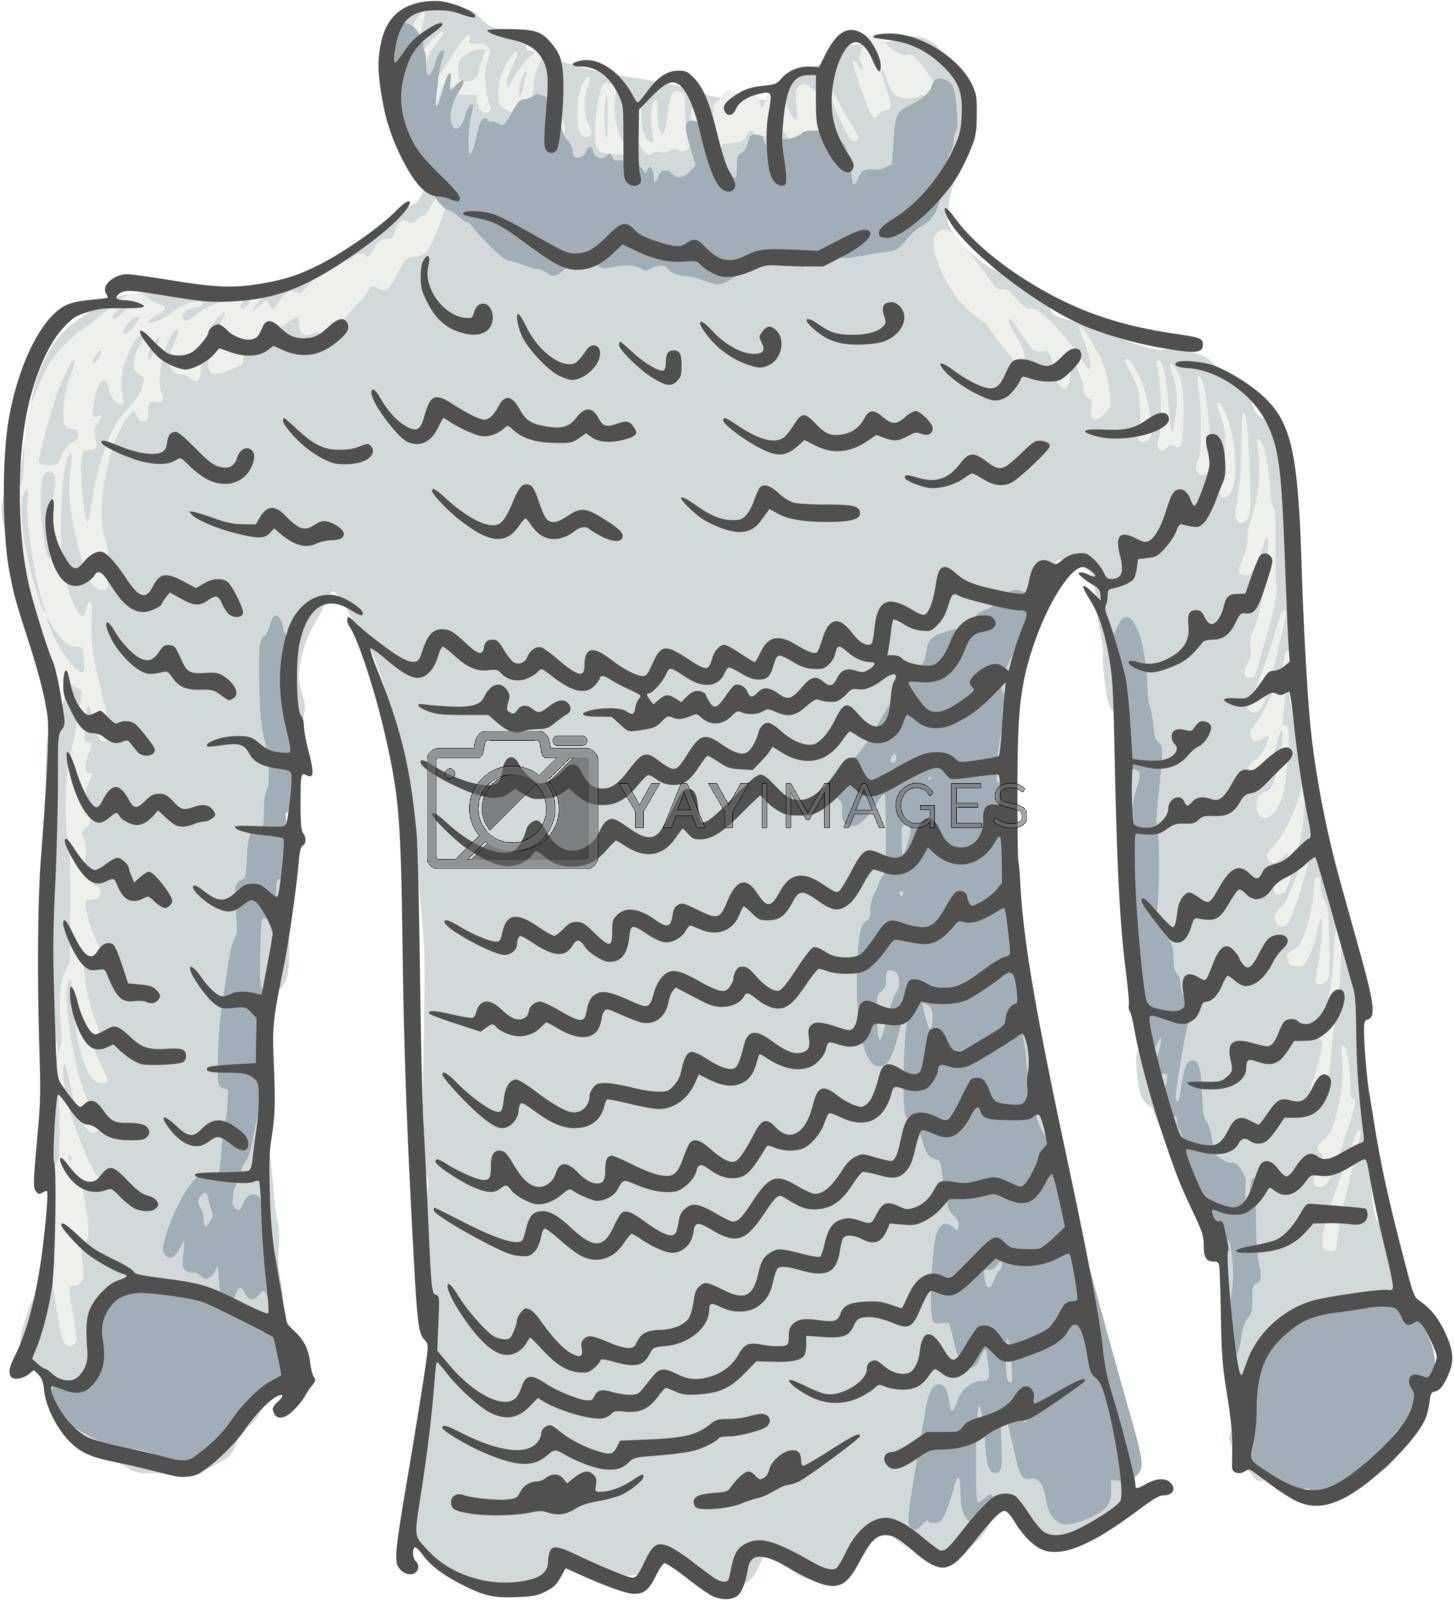 Royalty free image of sweater by Perysty